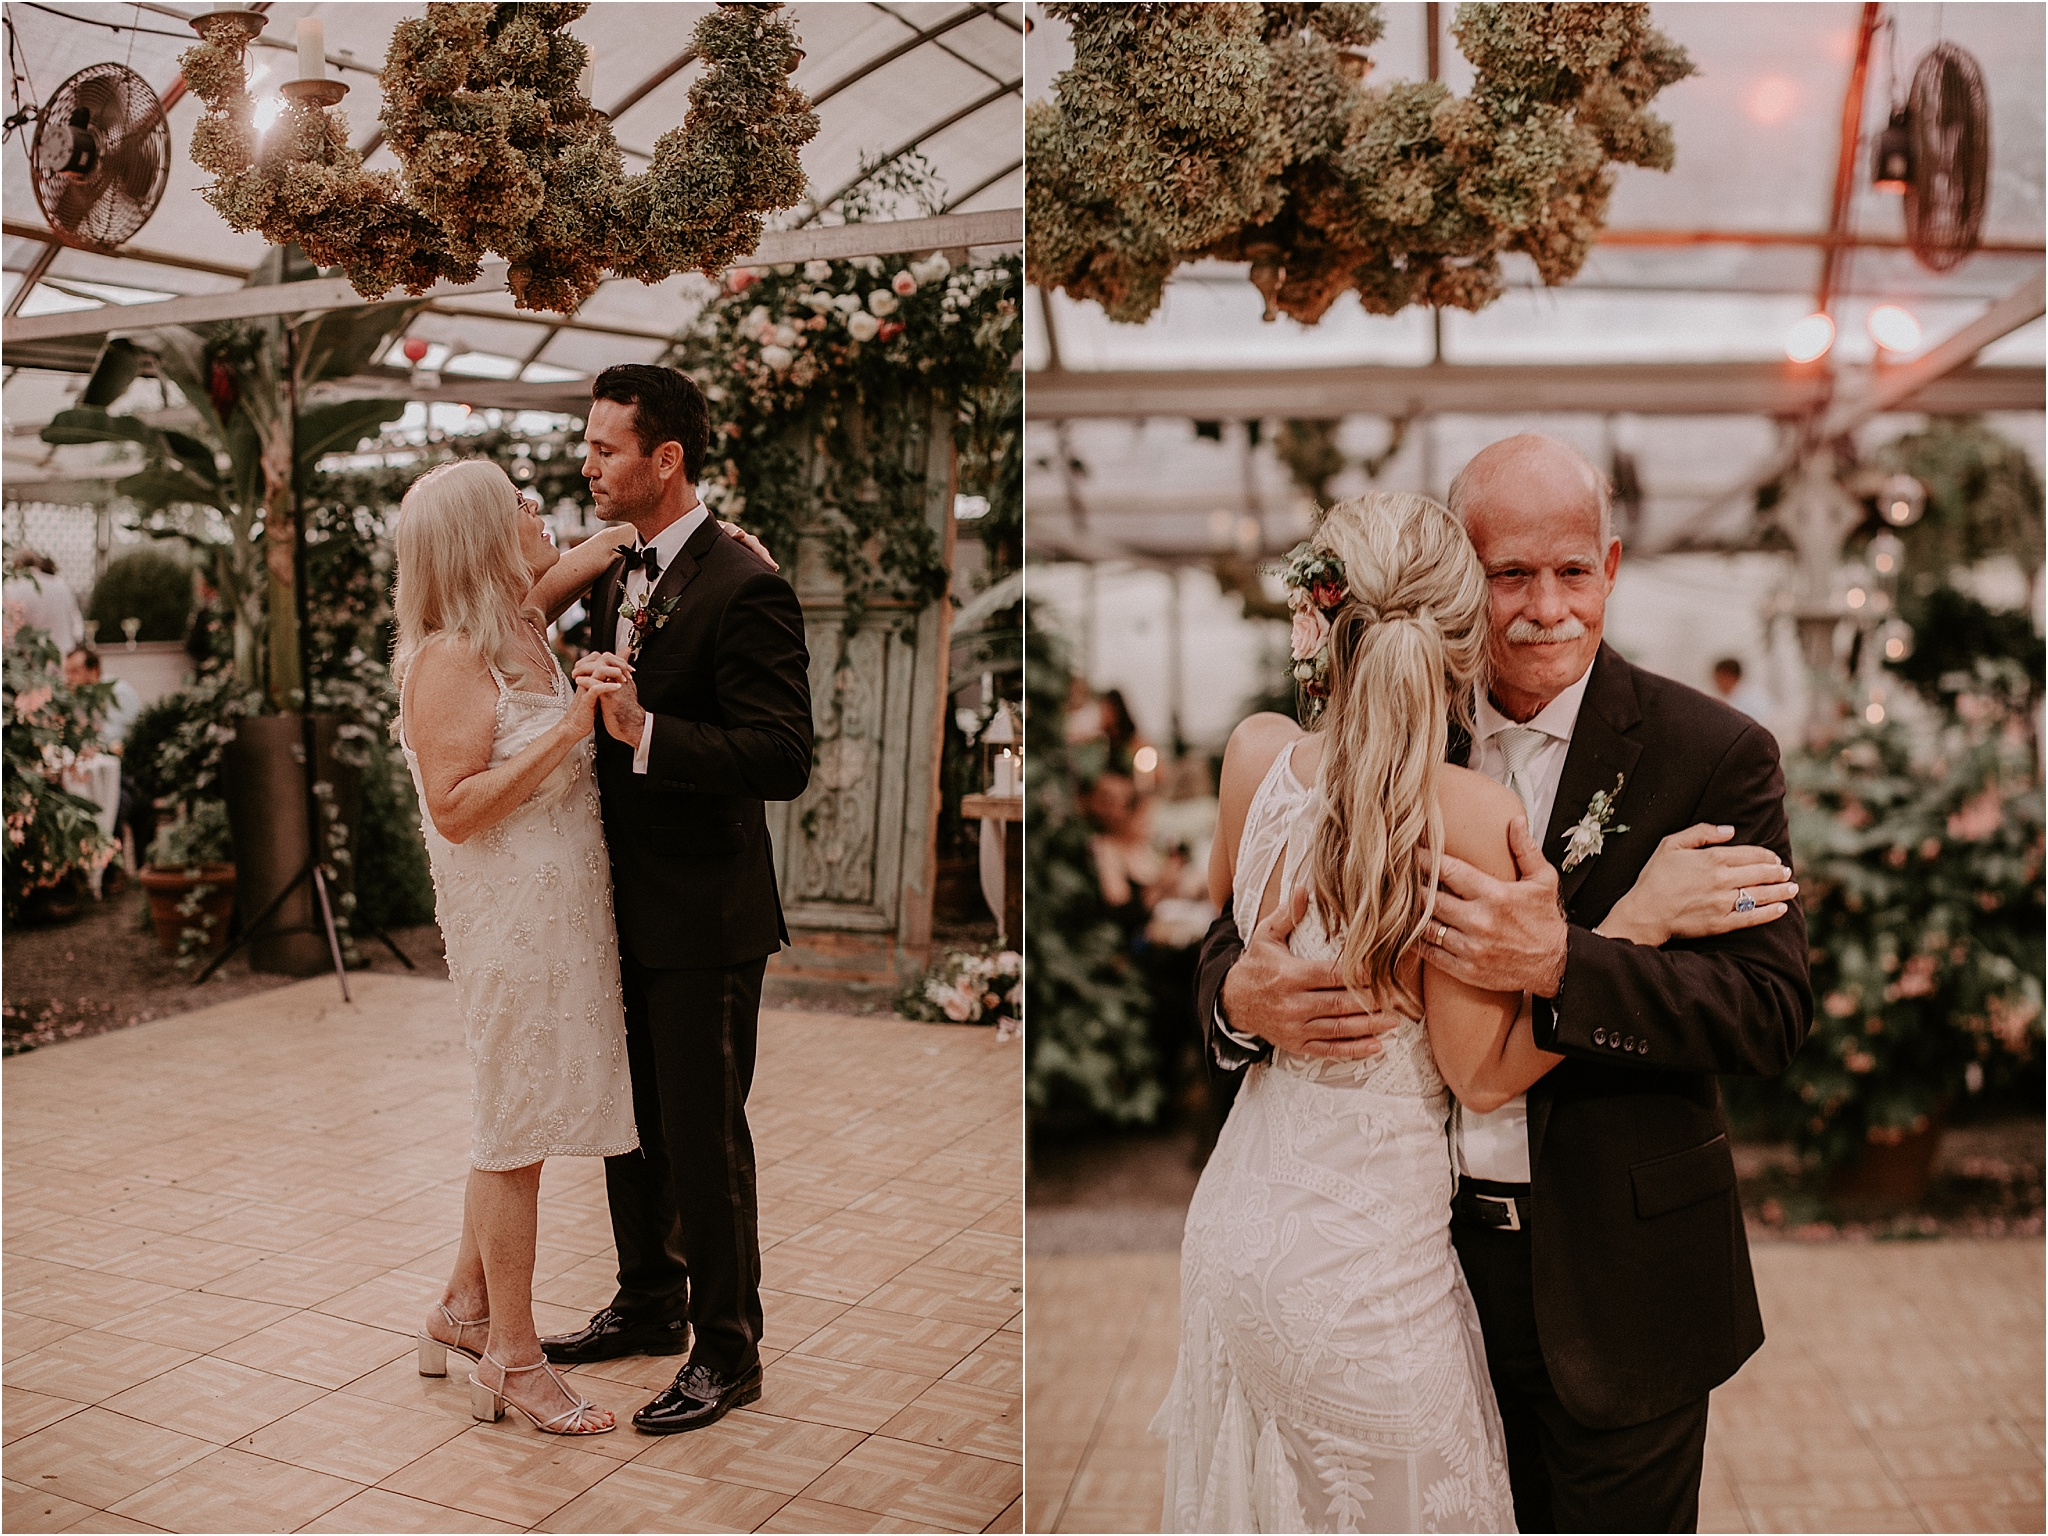 Sarah_Brookhart_Hortulus_Farm_Garden_and_Nursey_Wedding_Photographer_0073.jpg